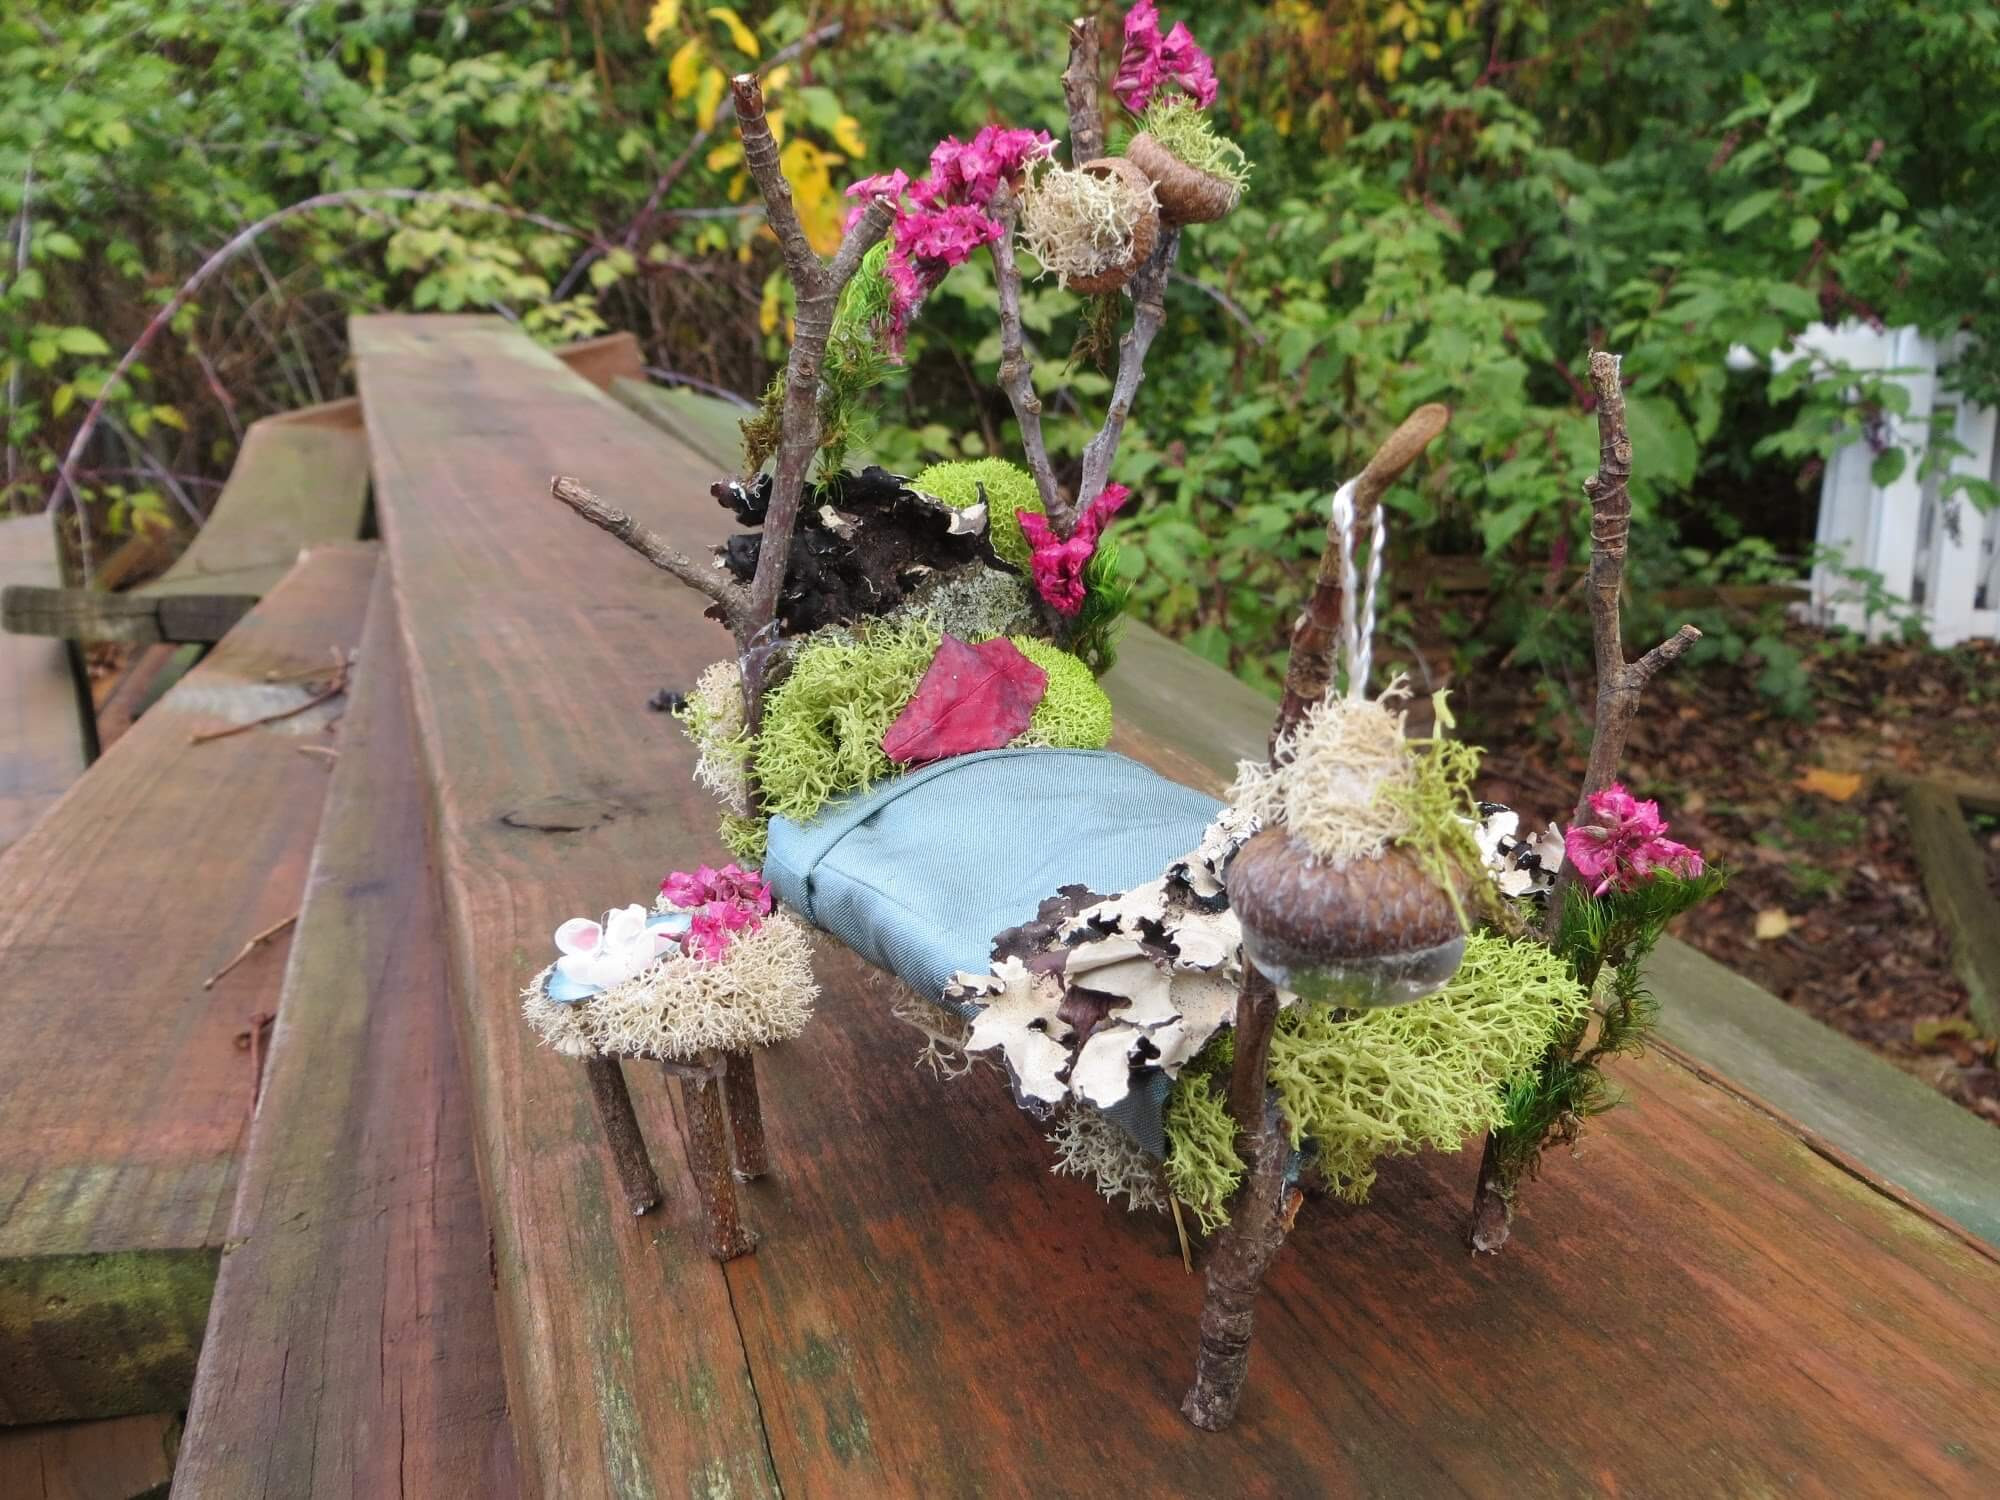 Best ideas about DIY Fairy Garden Accessories . Save or Pin 38 Best DIY Fairy Garden Accessories Ideas and Designs for Now.